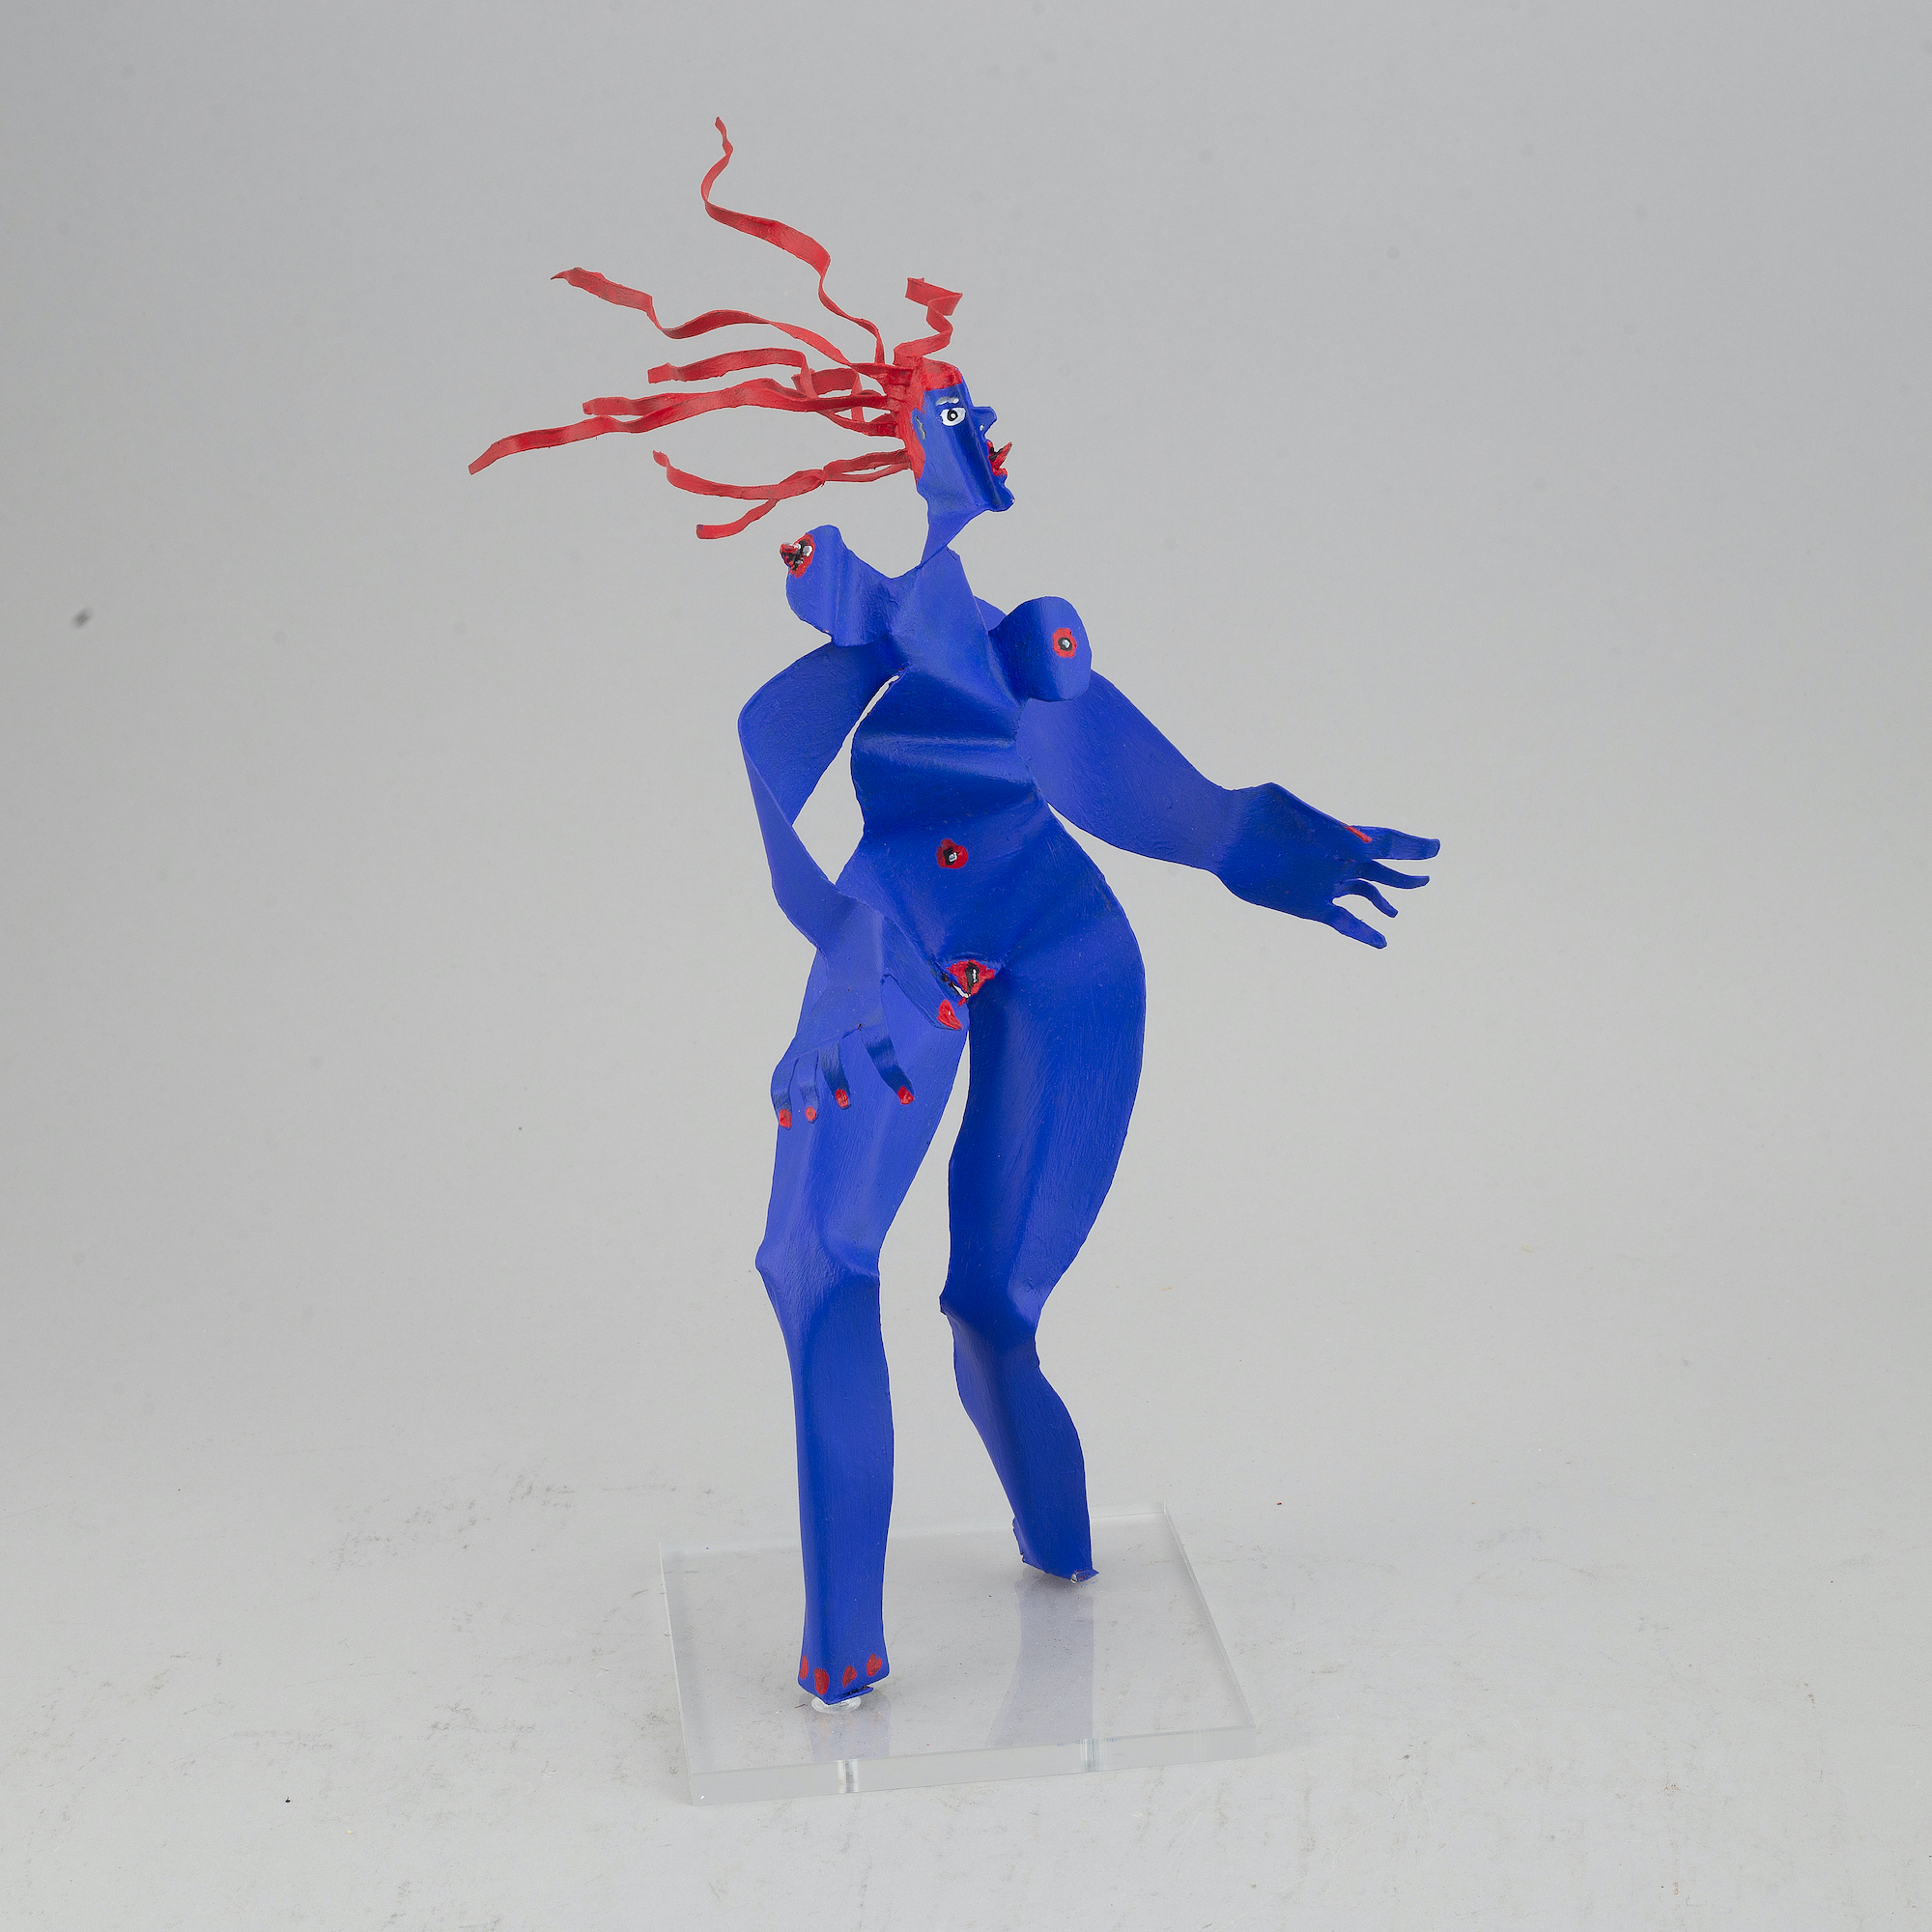 Timo Solin - Woman with red hair, metal sculpture